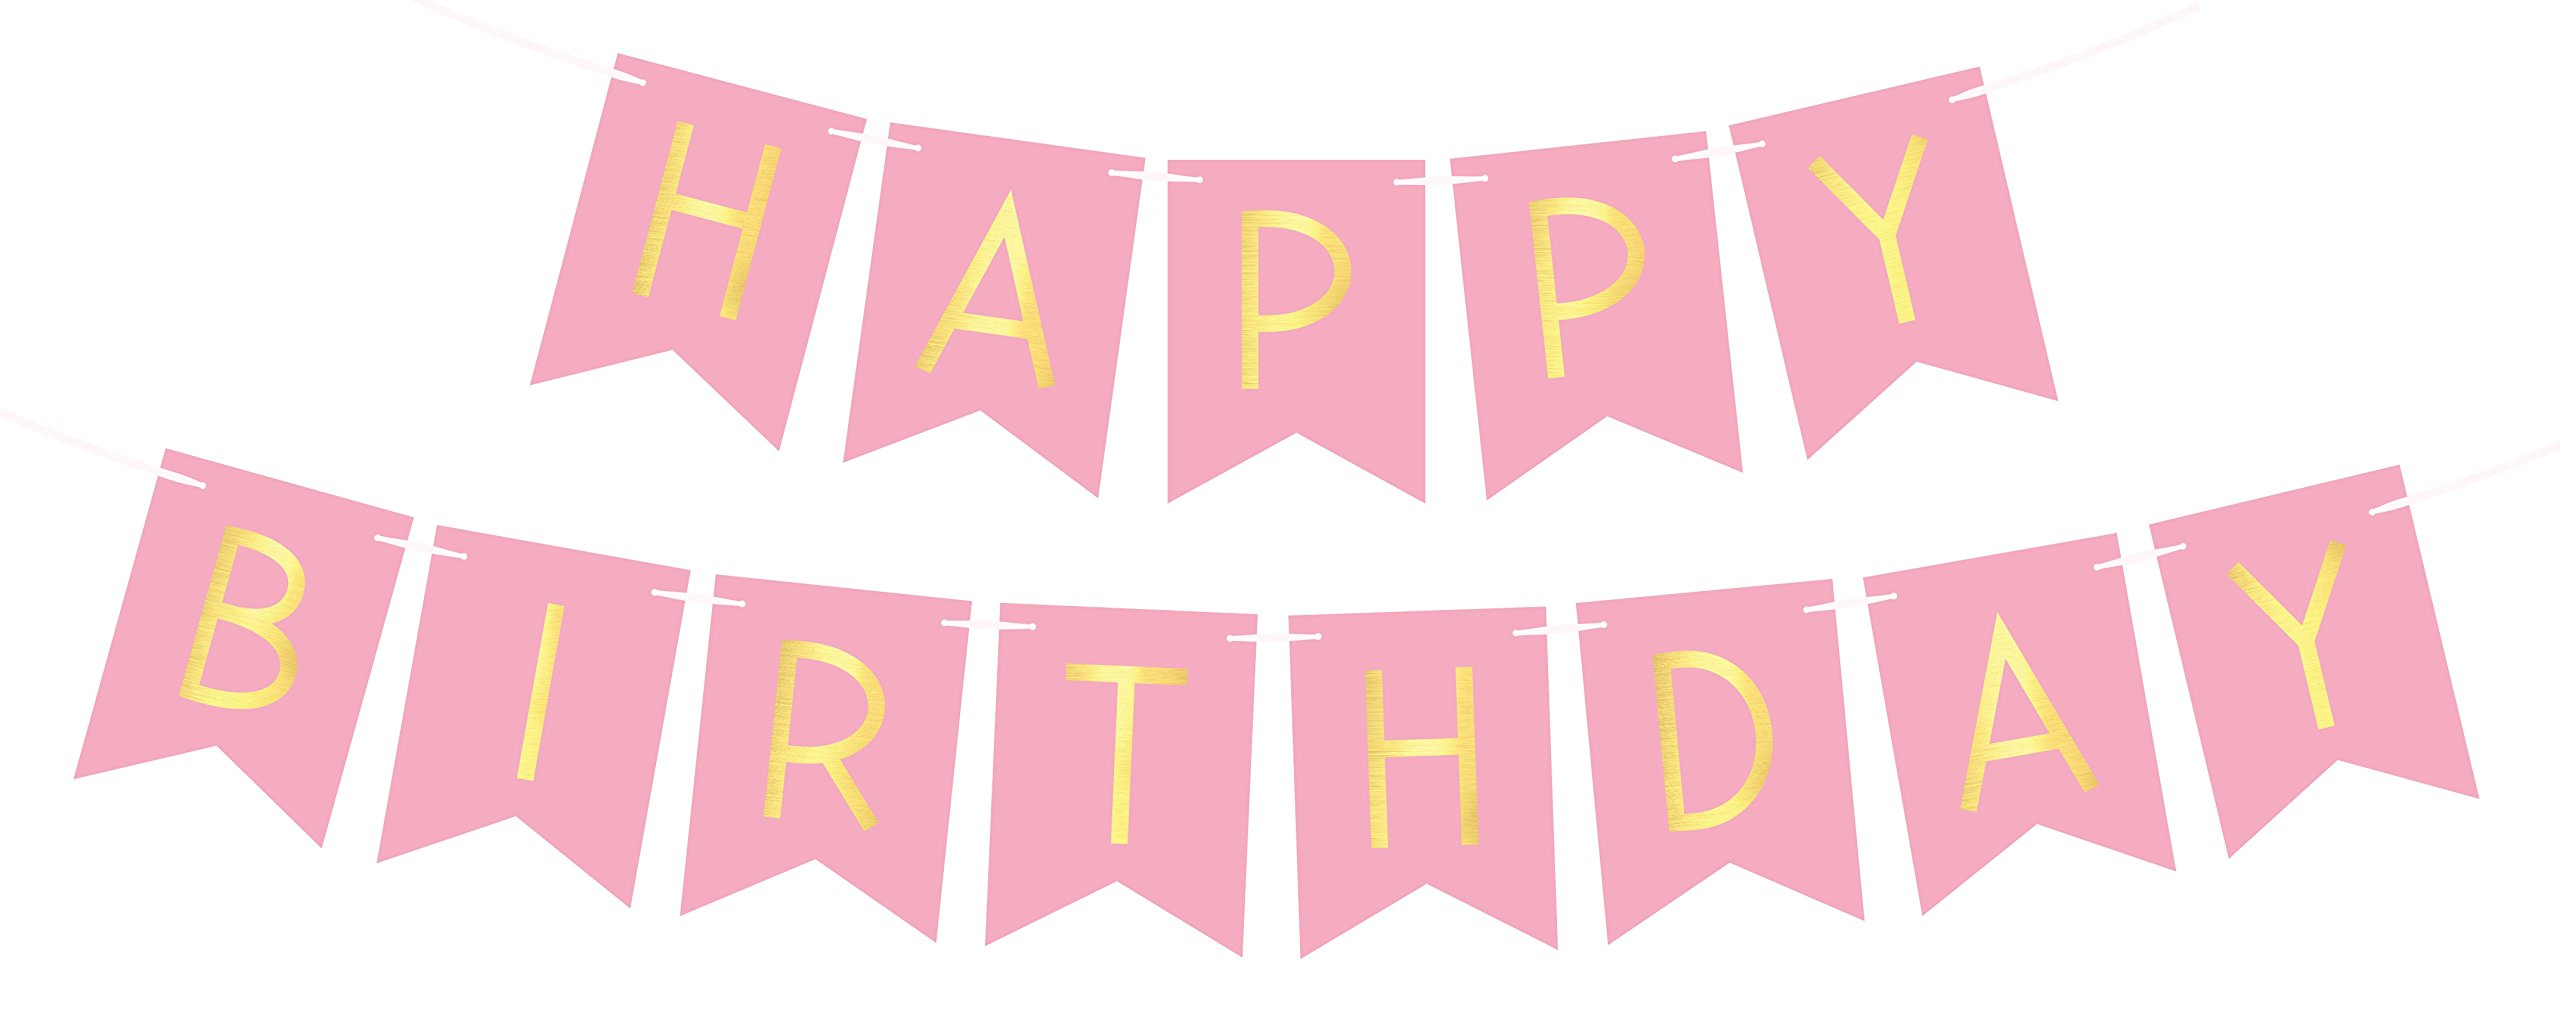 Pink Happy Birthday Bunting Banner With Shimmering Gold Letters